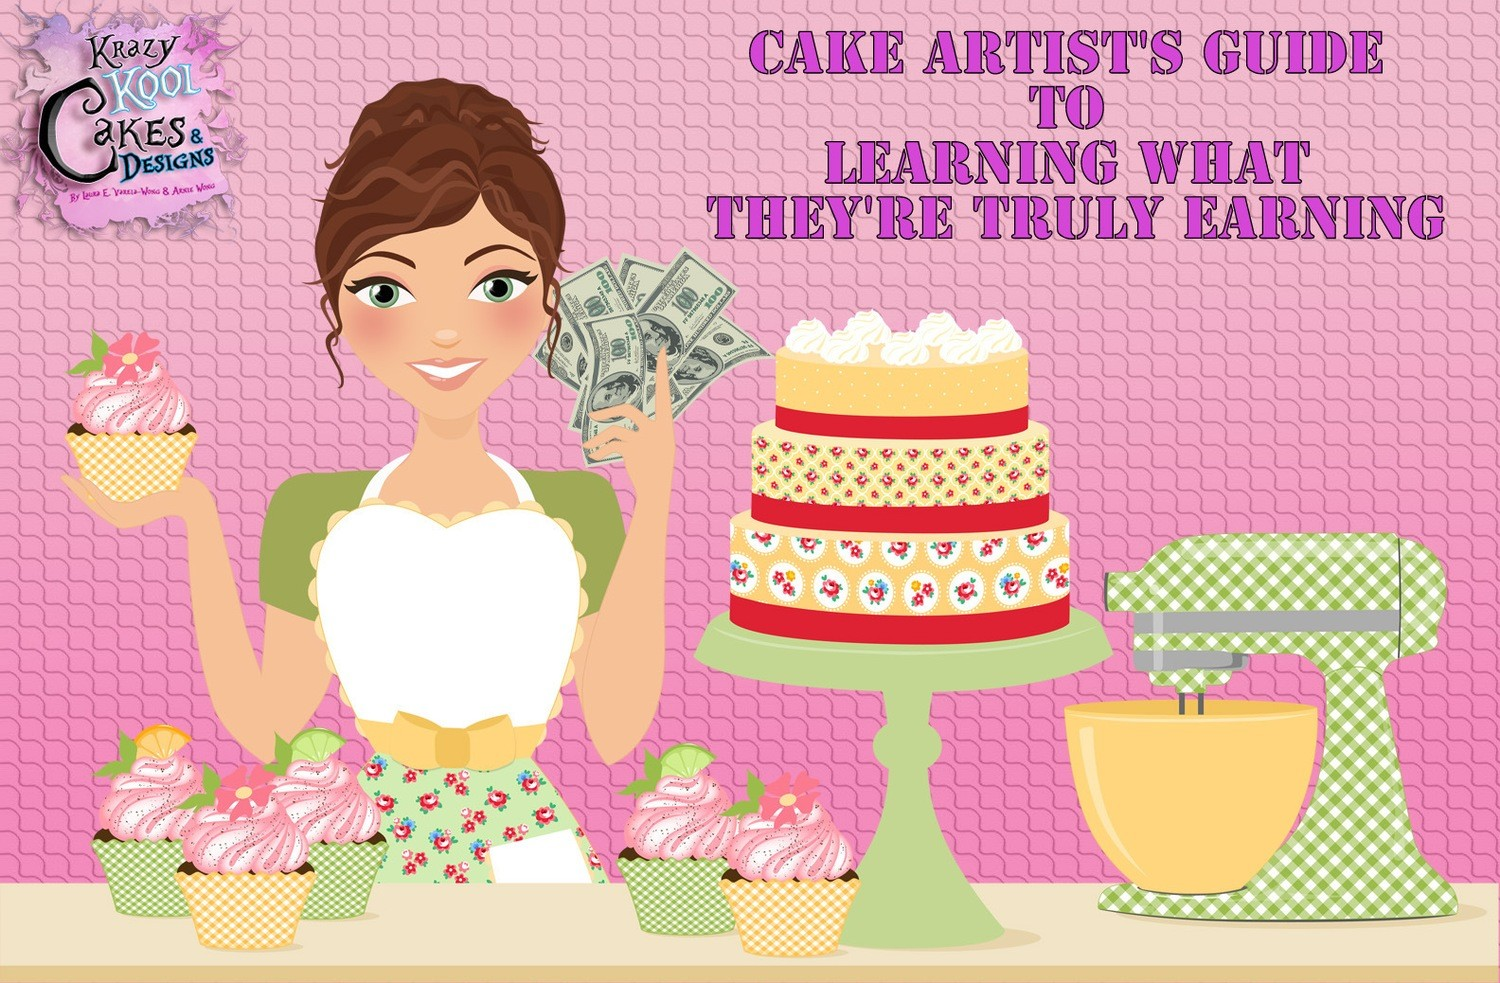 Cake Artist's Guide To Learning What They're Truly Earning: PDF & Video Tutorial